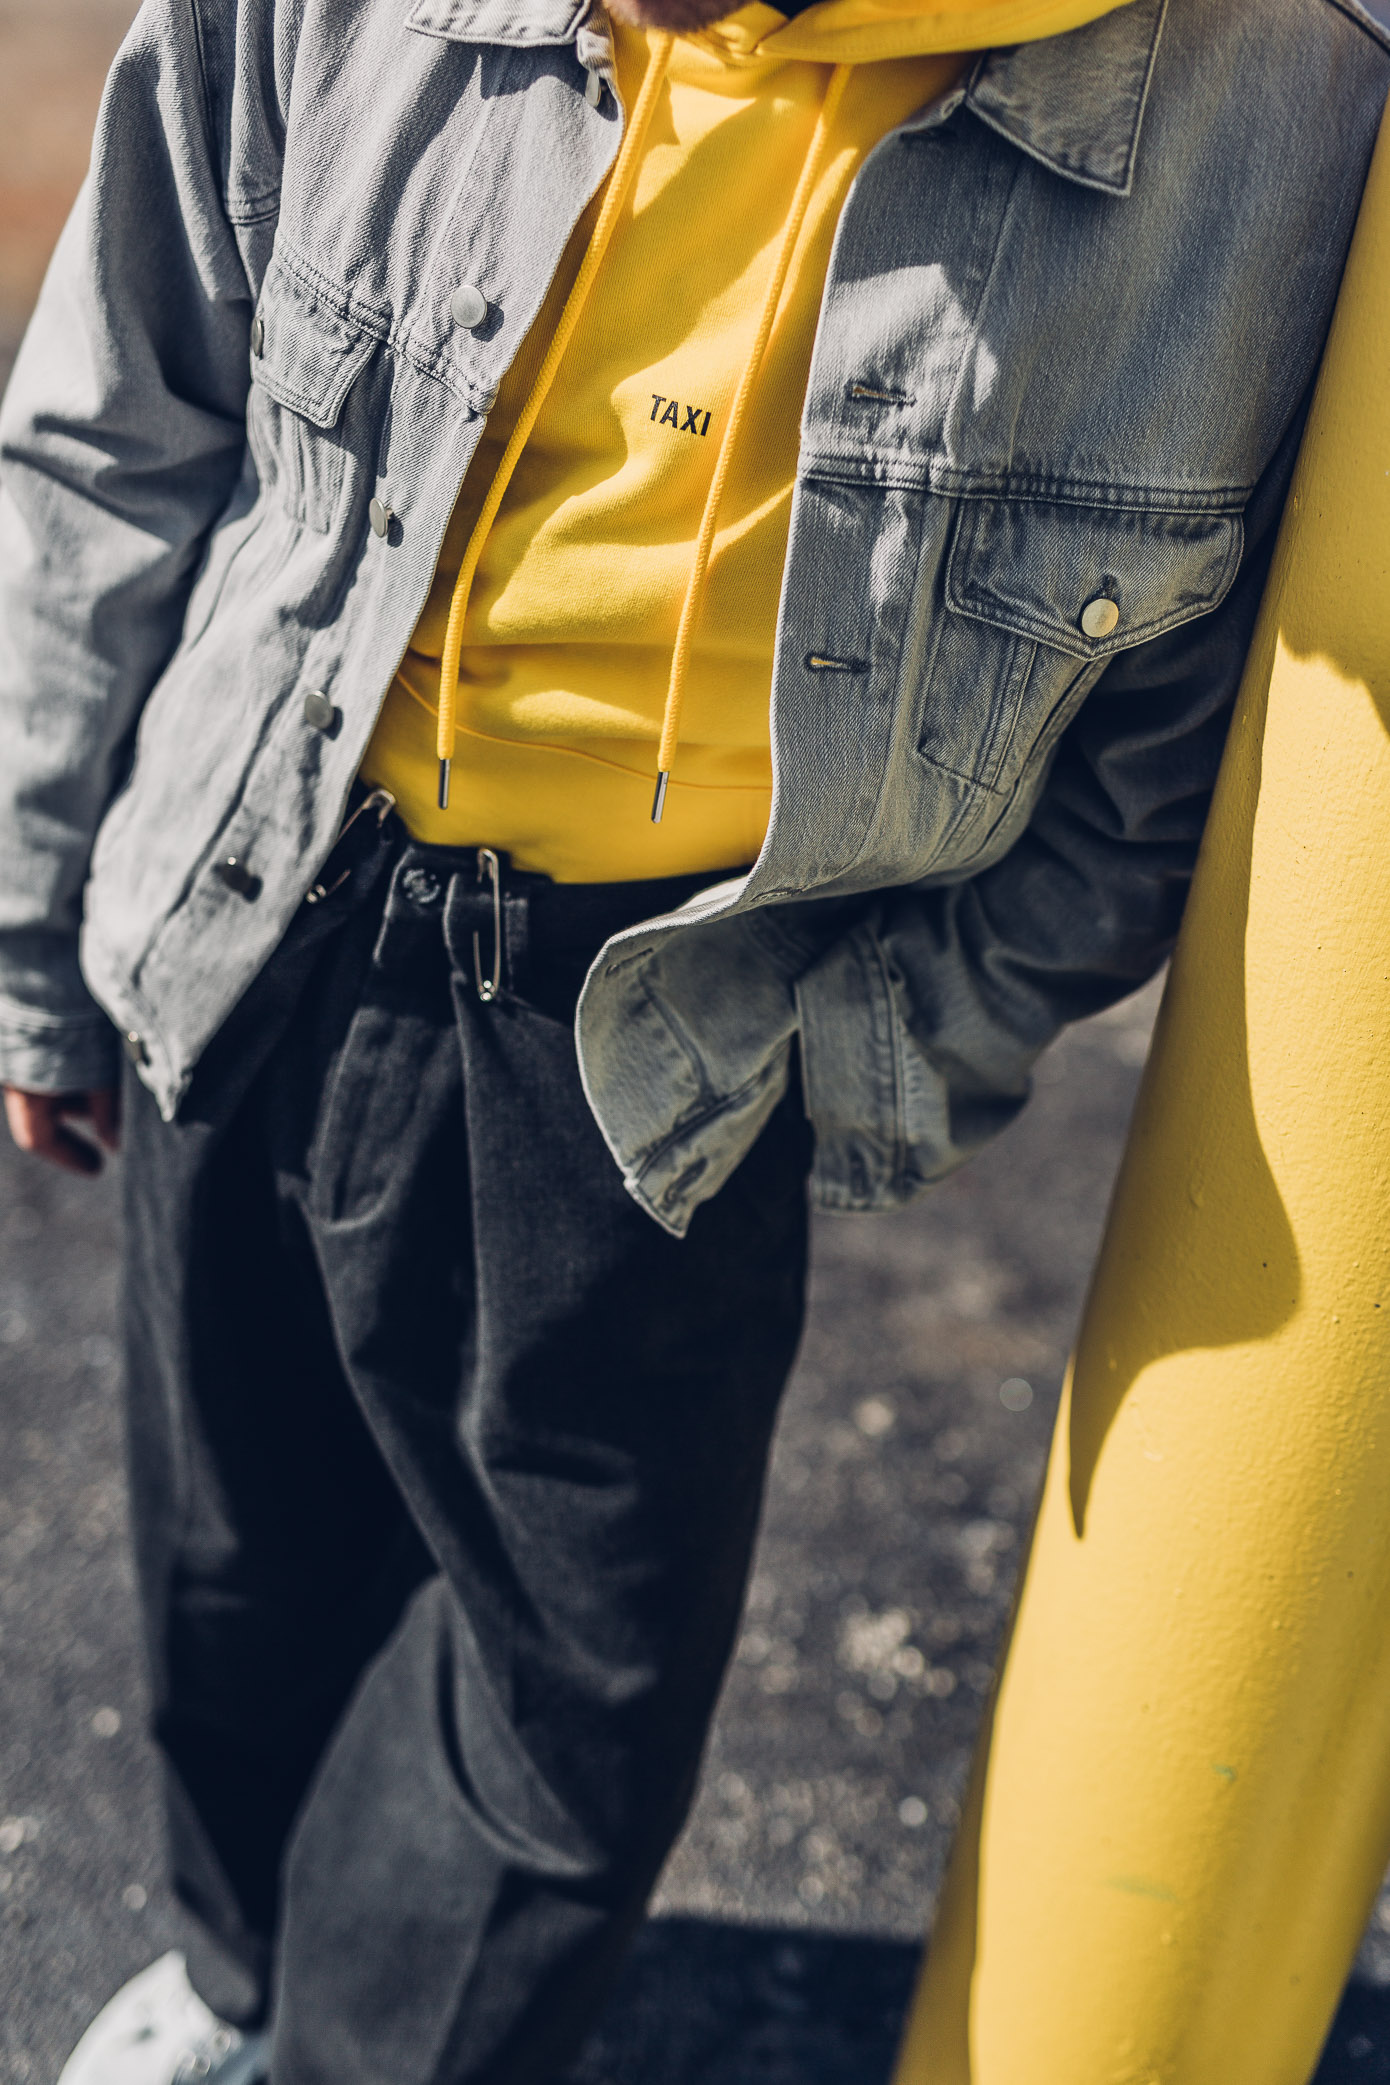 Helmut Lang, Taxi capsule collection, Christopher Shannon, Novesta